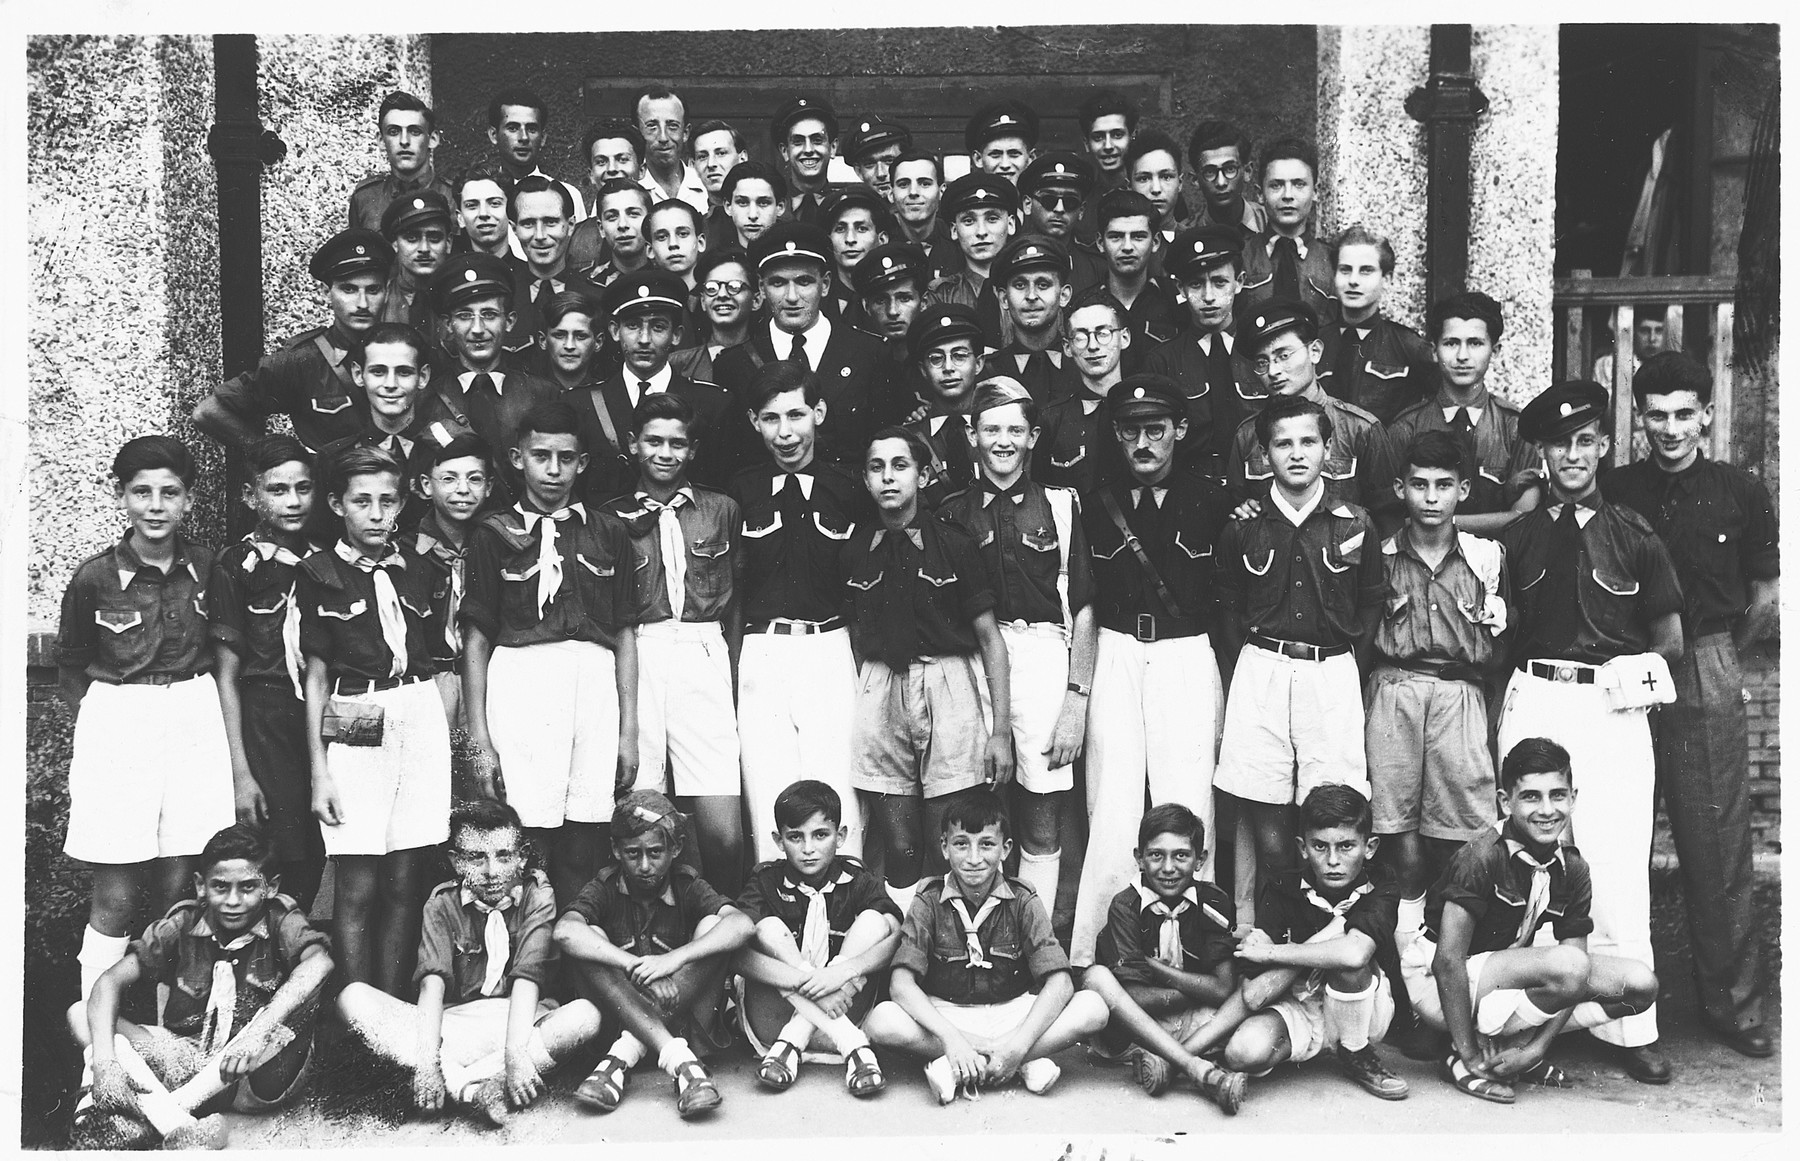 Group portrait of members of the Beit Trumpeldor Zionist youth movement.